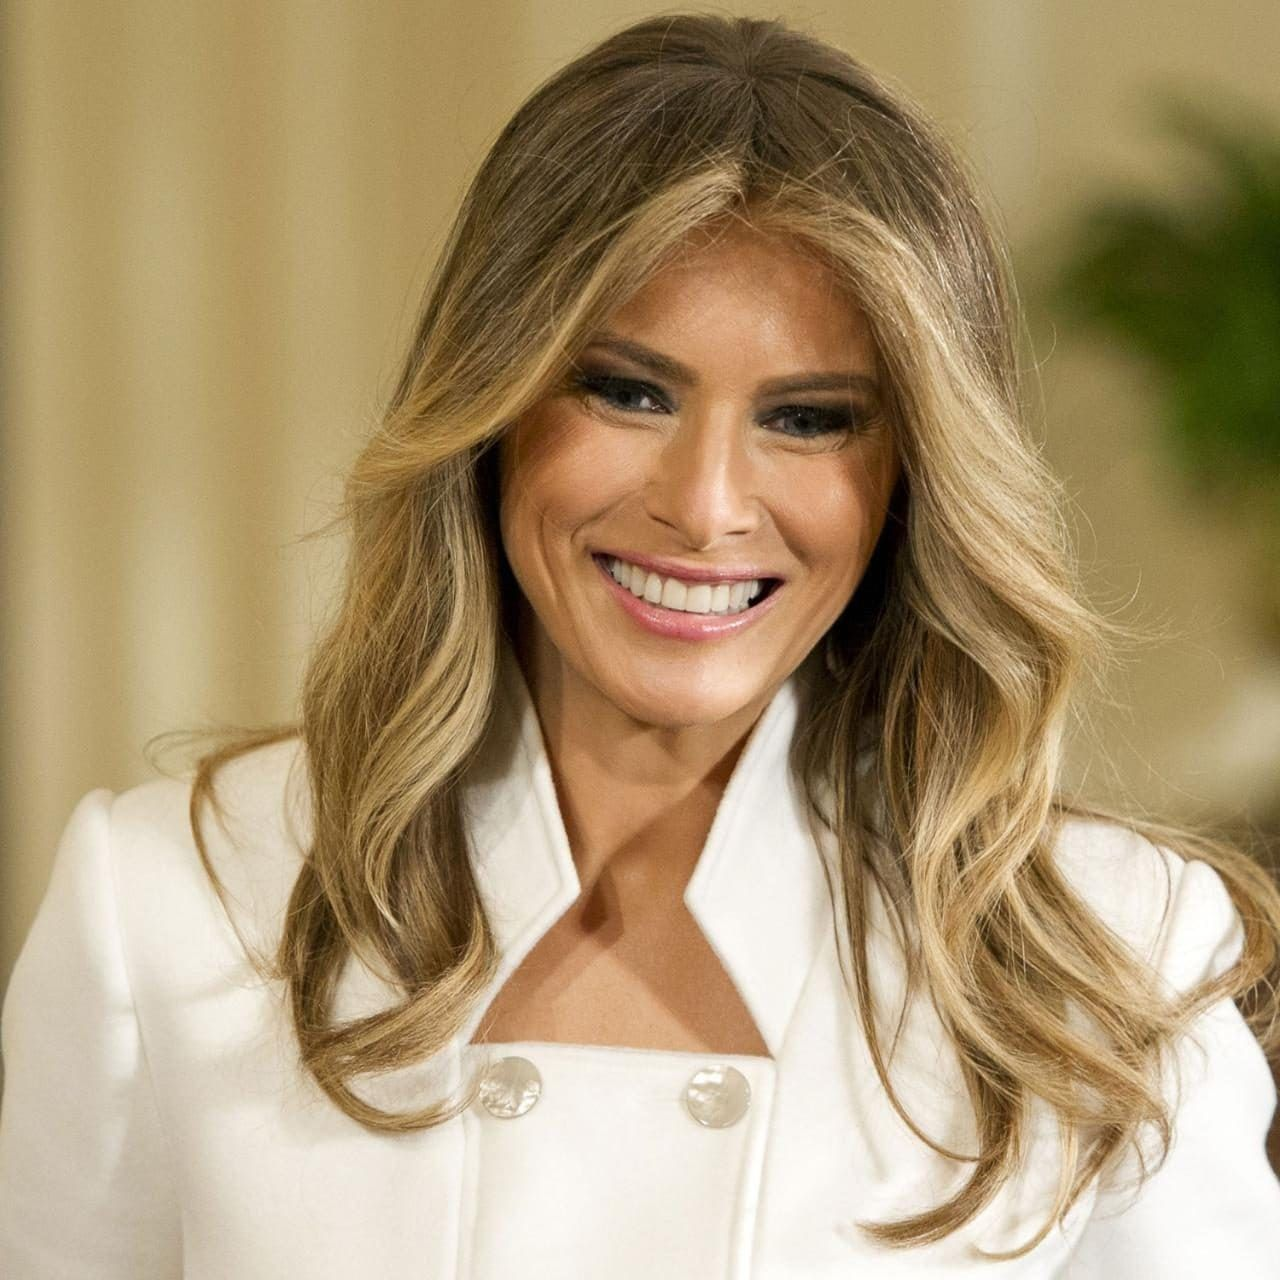 Melania Trump S Best Hairstyles And Beauty Looks During The 2020 Election Campaign Trump Hair Hair Styles Milania Trump Style